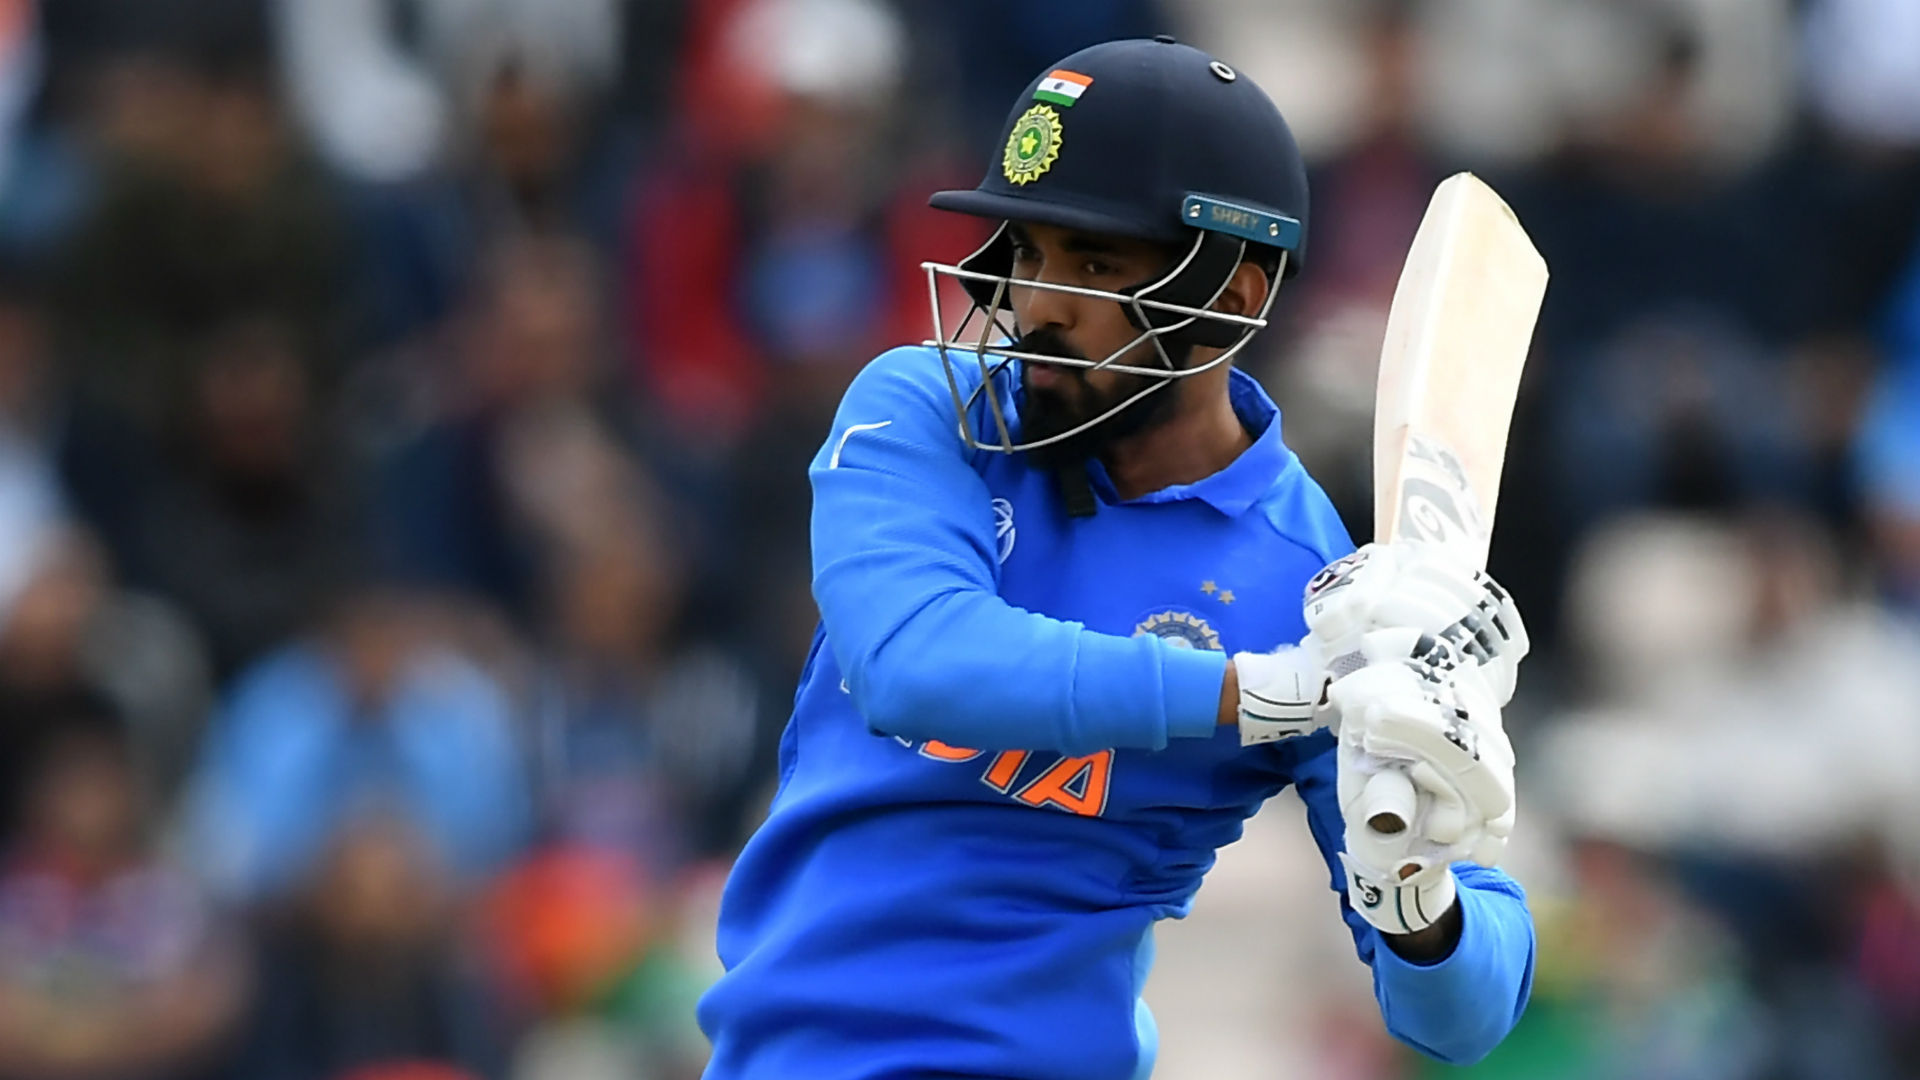 KL Rahul Scores Joint 6th Fastest Fifty for India During IND vs NZ 1st T20I 2020 in Auckland